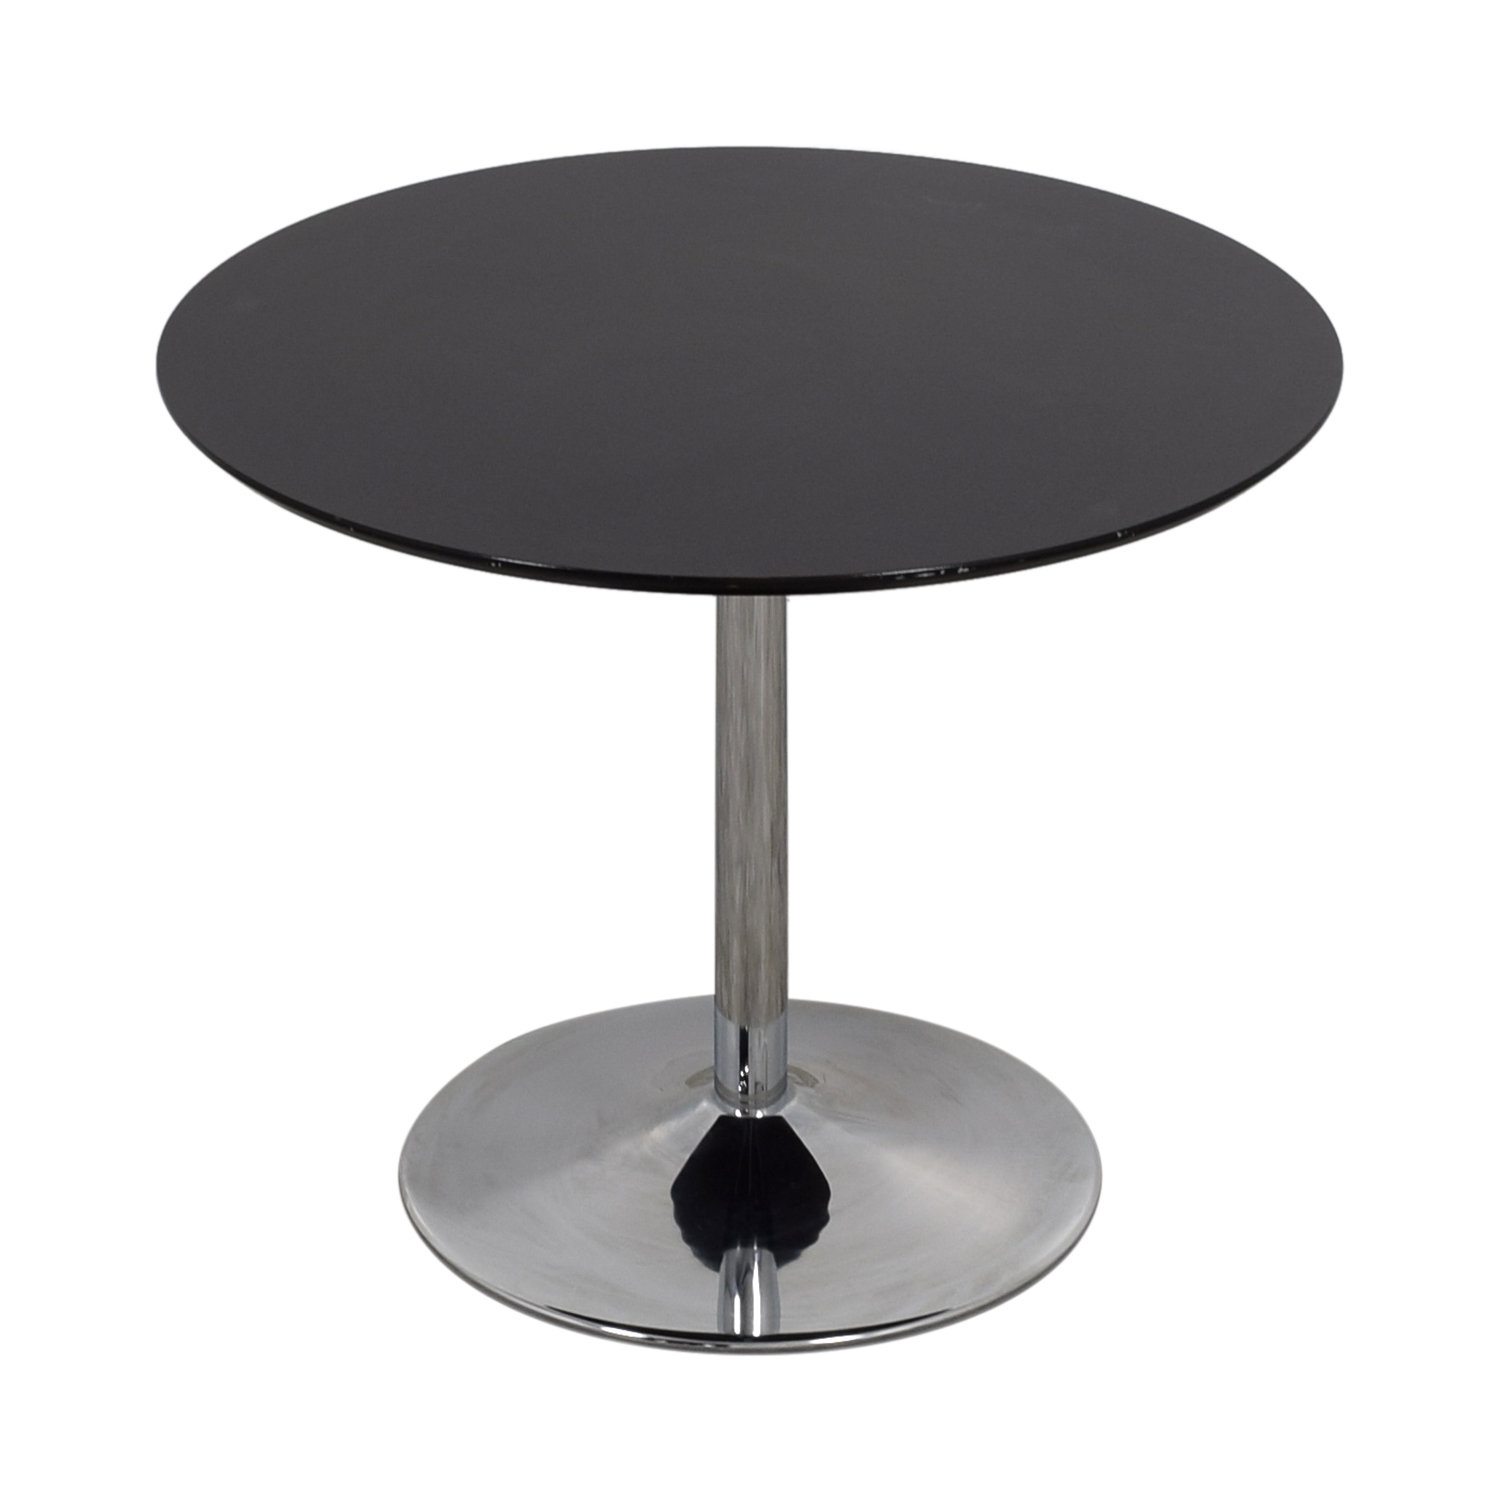 Black Deco Round Table used